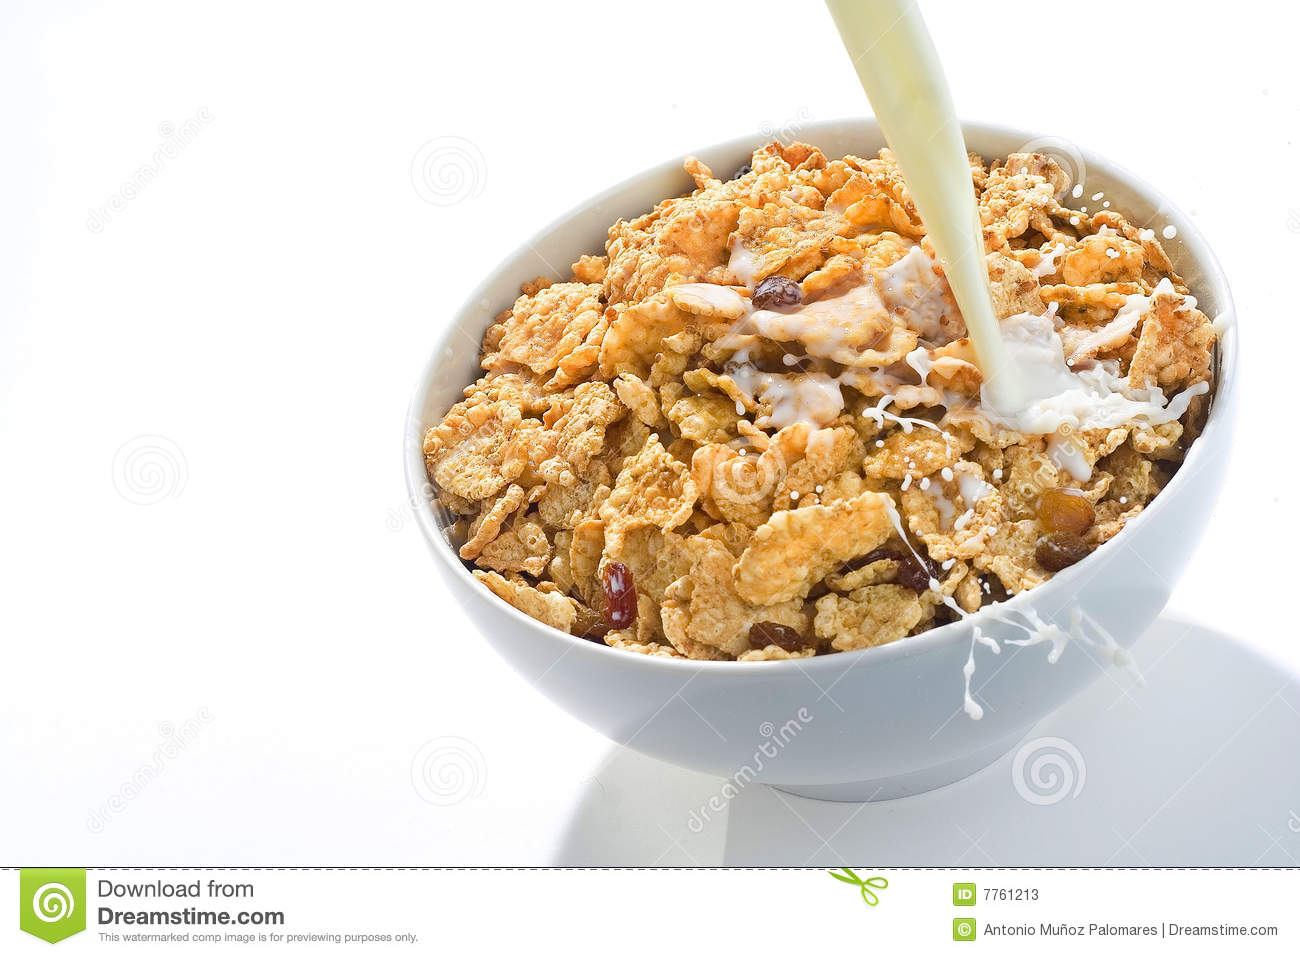 Bowl Of Cereal With Raisins And Milk Stock Image - Image ...